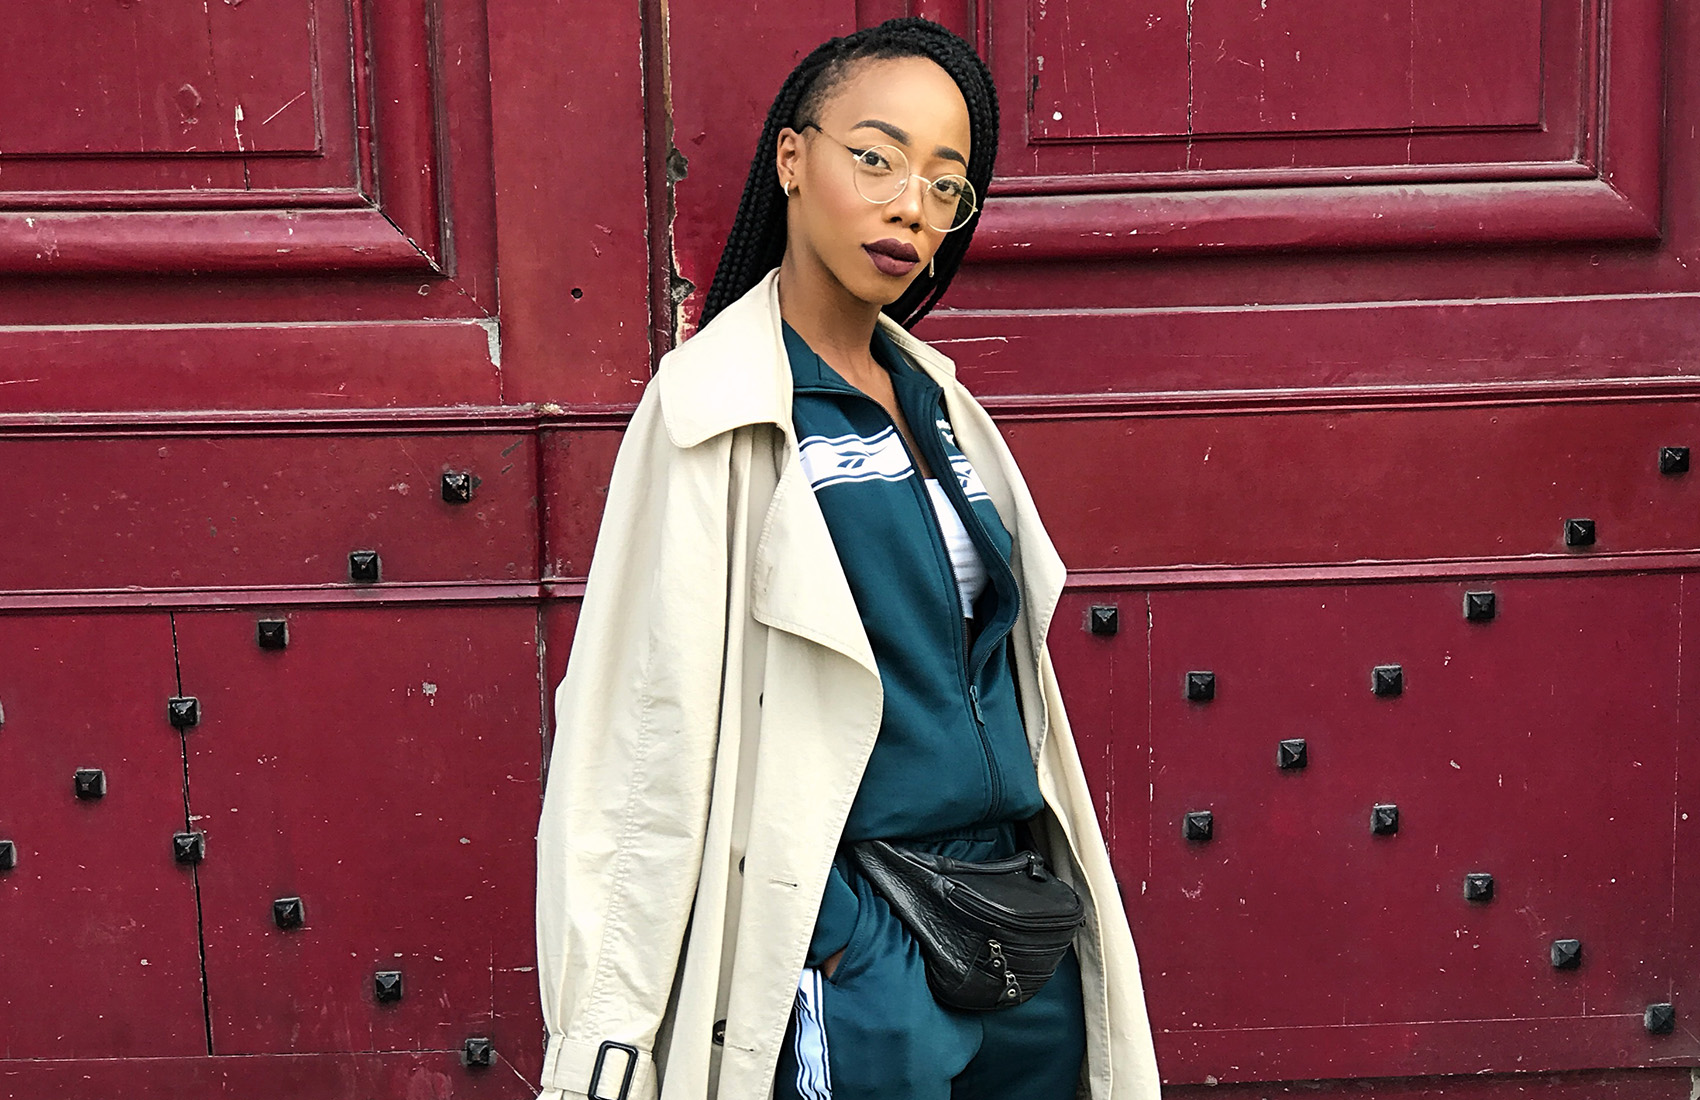 Meet Kimberly Anthony: The Parisian Streetwear Goddess You Want On Your Insta Feed